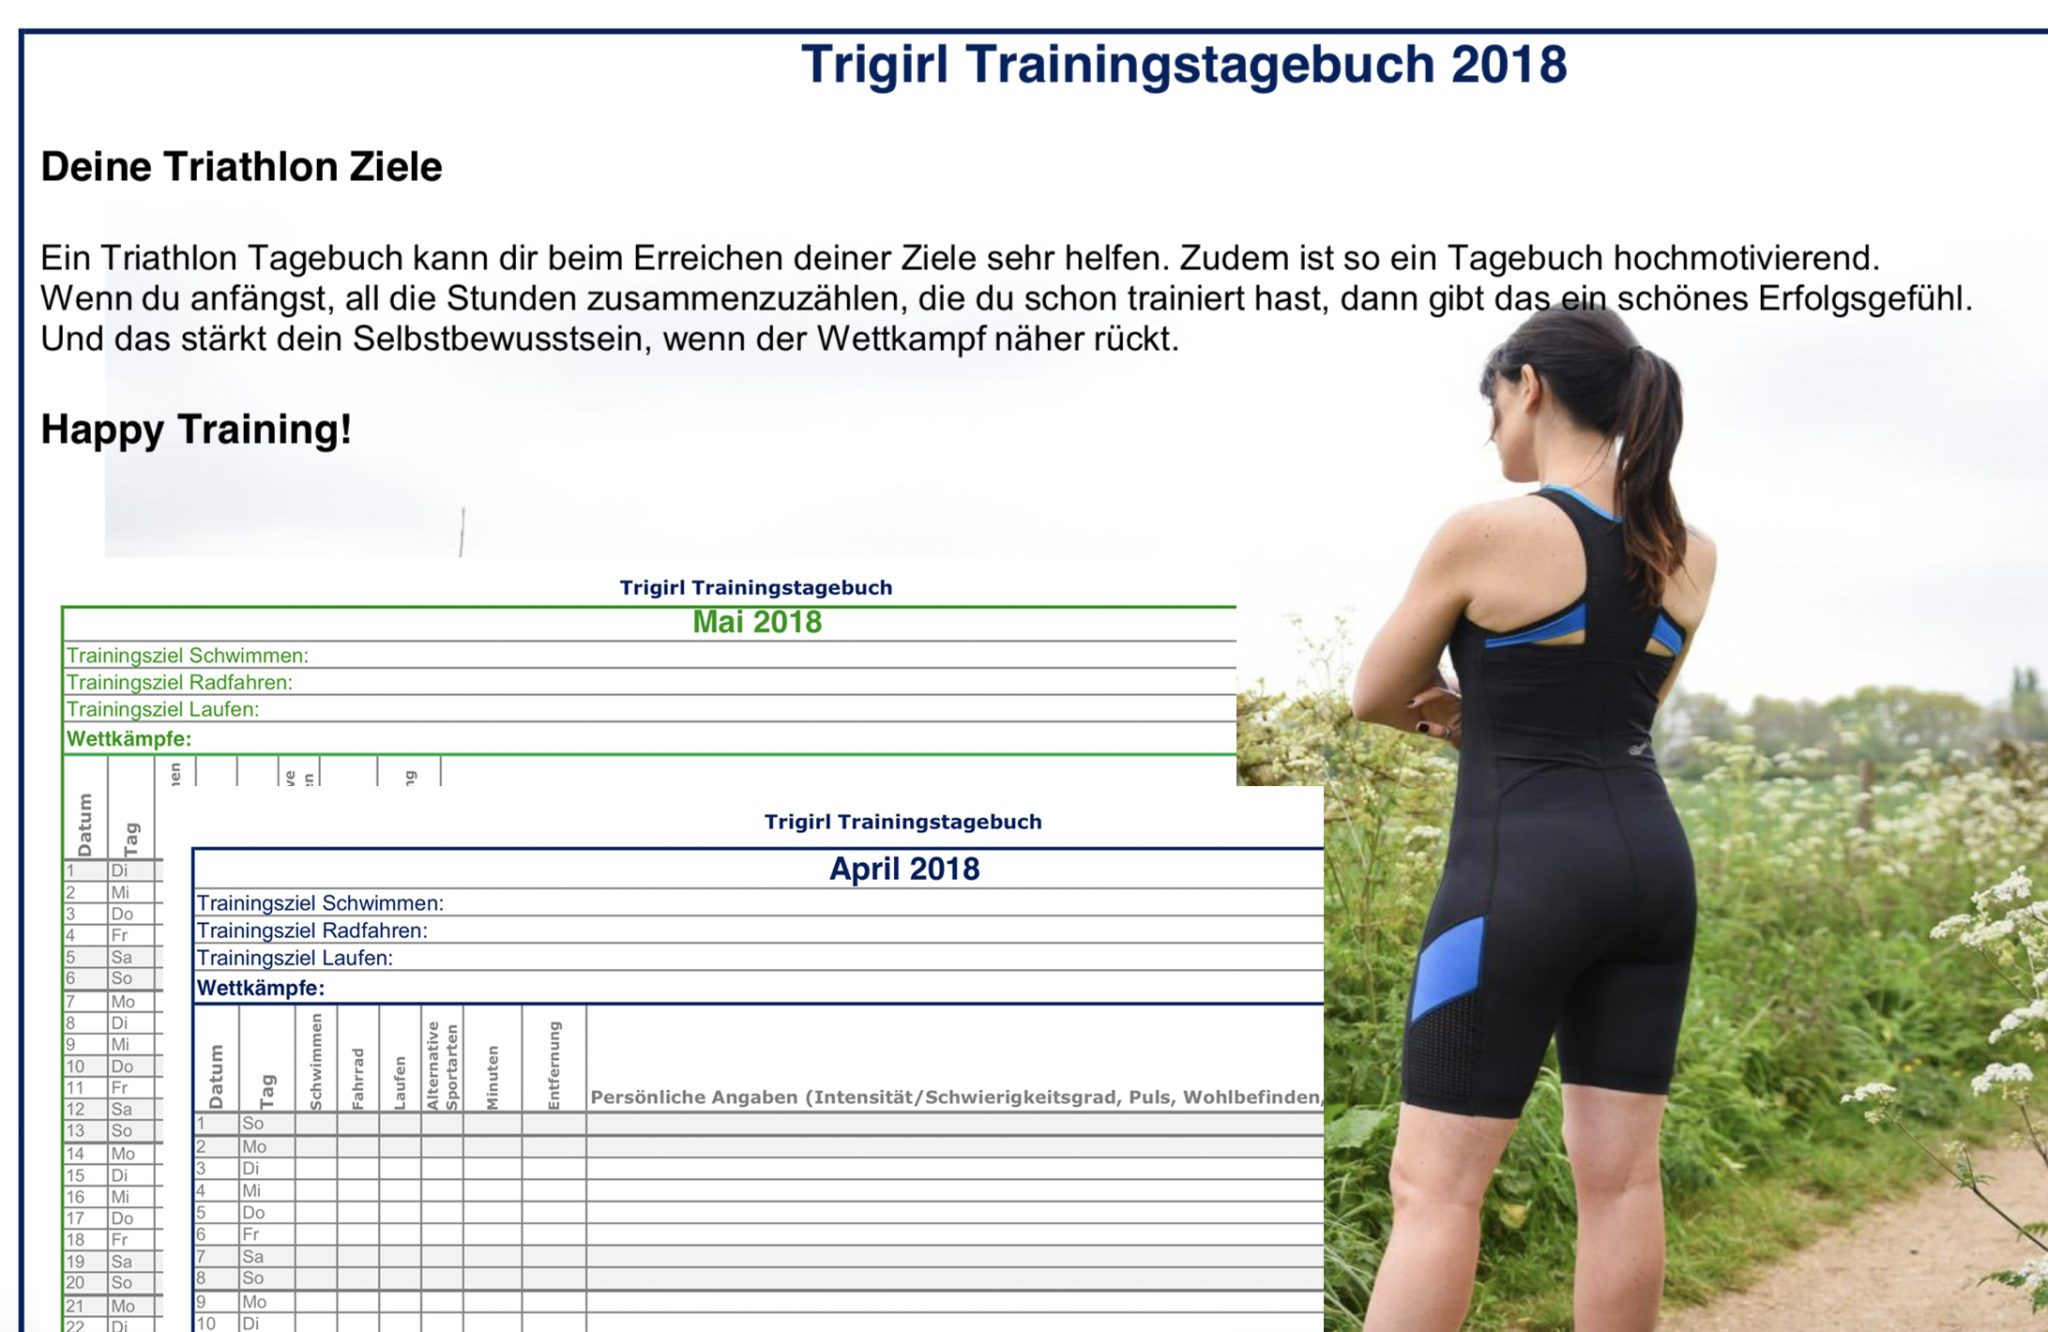 Triathlon-Trainingtagebuch-2018